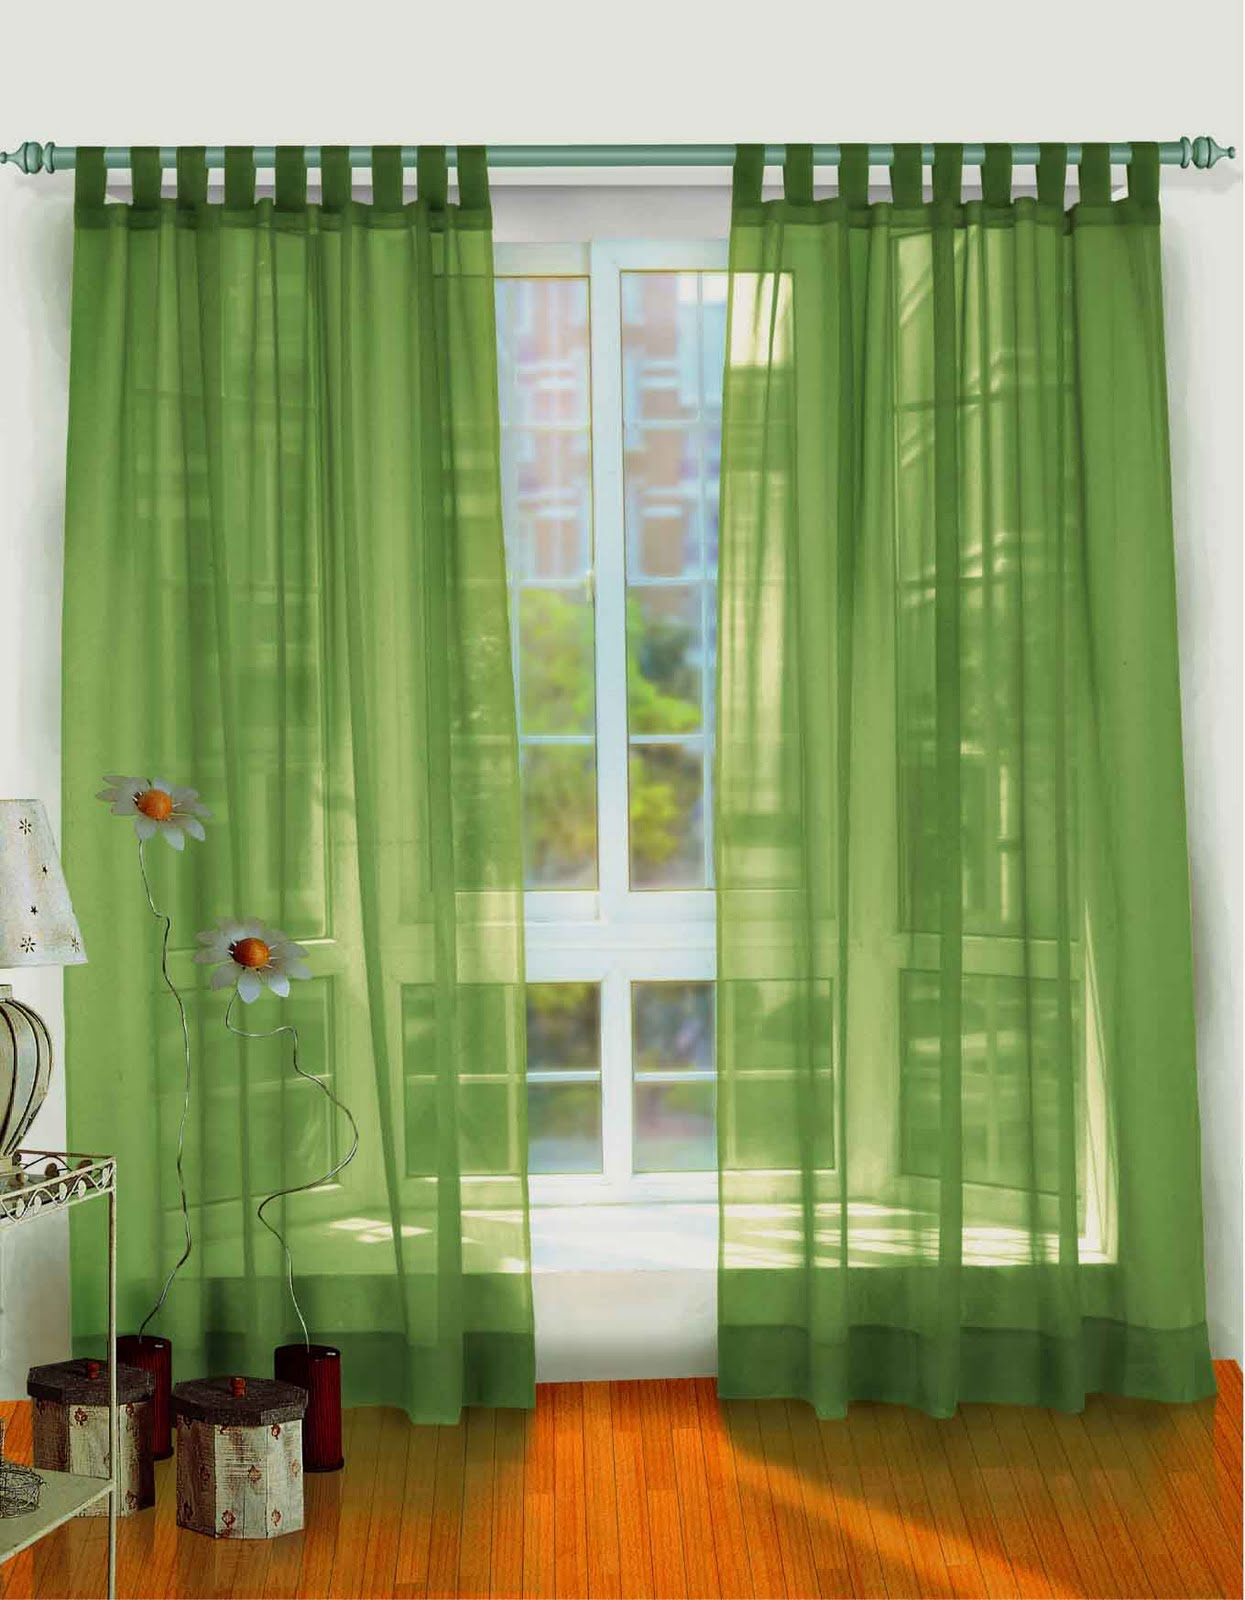 Modern furniture living room curtains ideas 2011 for Living room curtain ideas